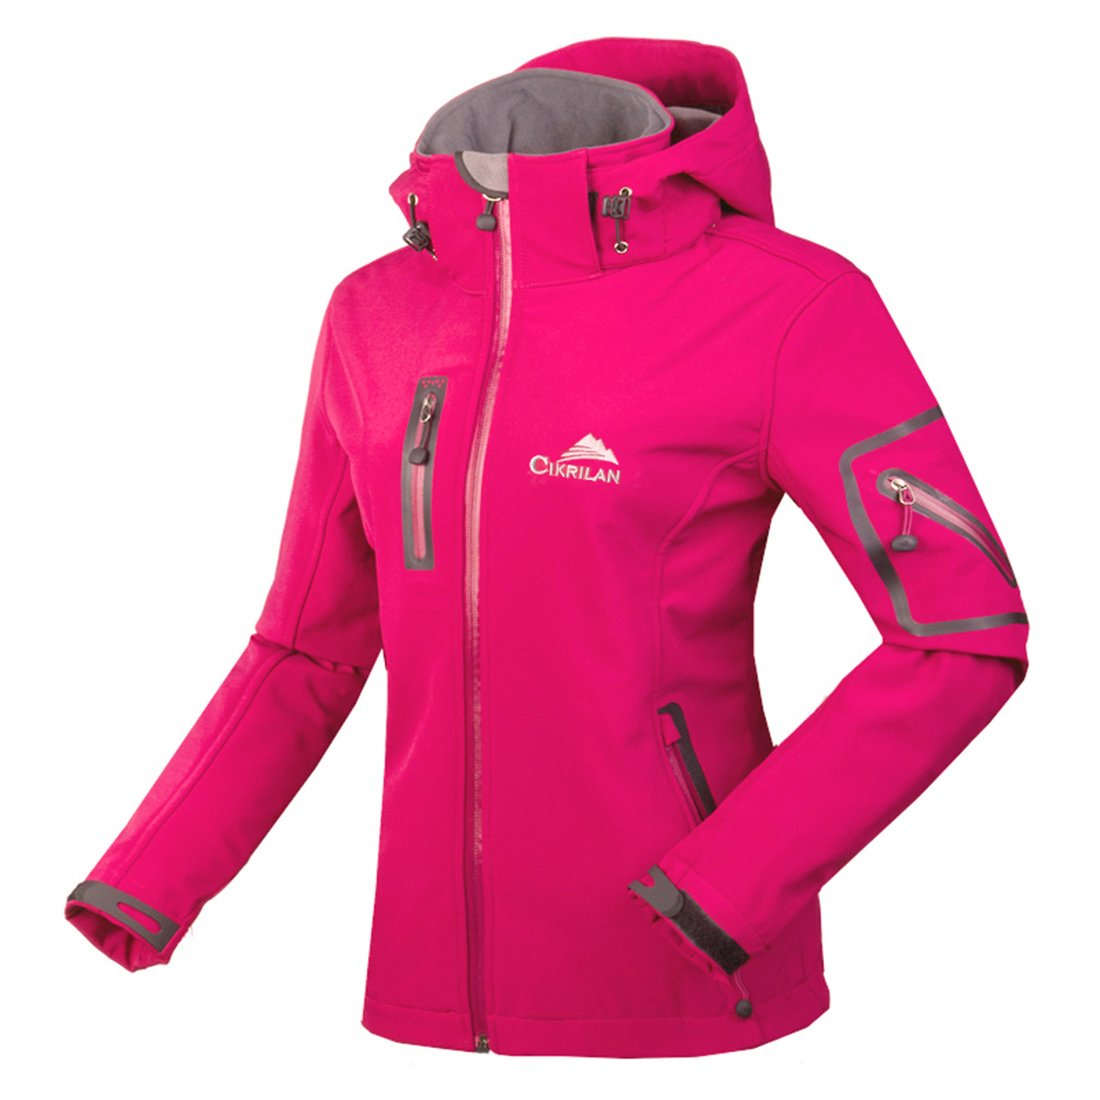 CIKRILAN Women's Soft Shell Windproof Outdoor Fleece Lined Jacket Ladies Coat topway CKL1200